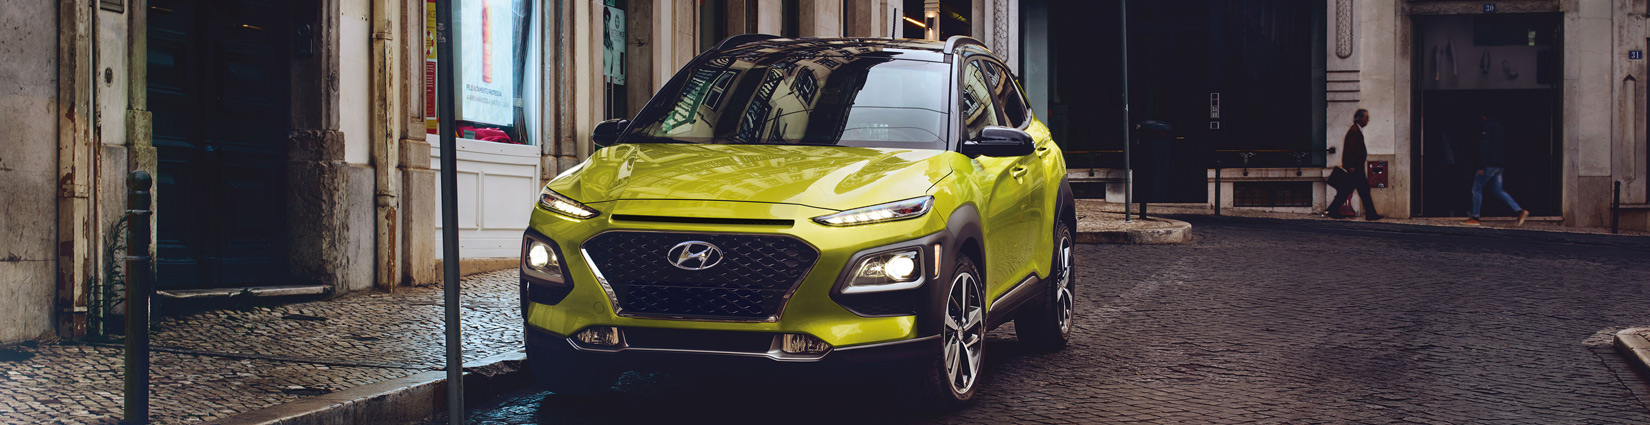 2018-hyundai-kona-green-yellow